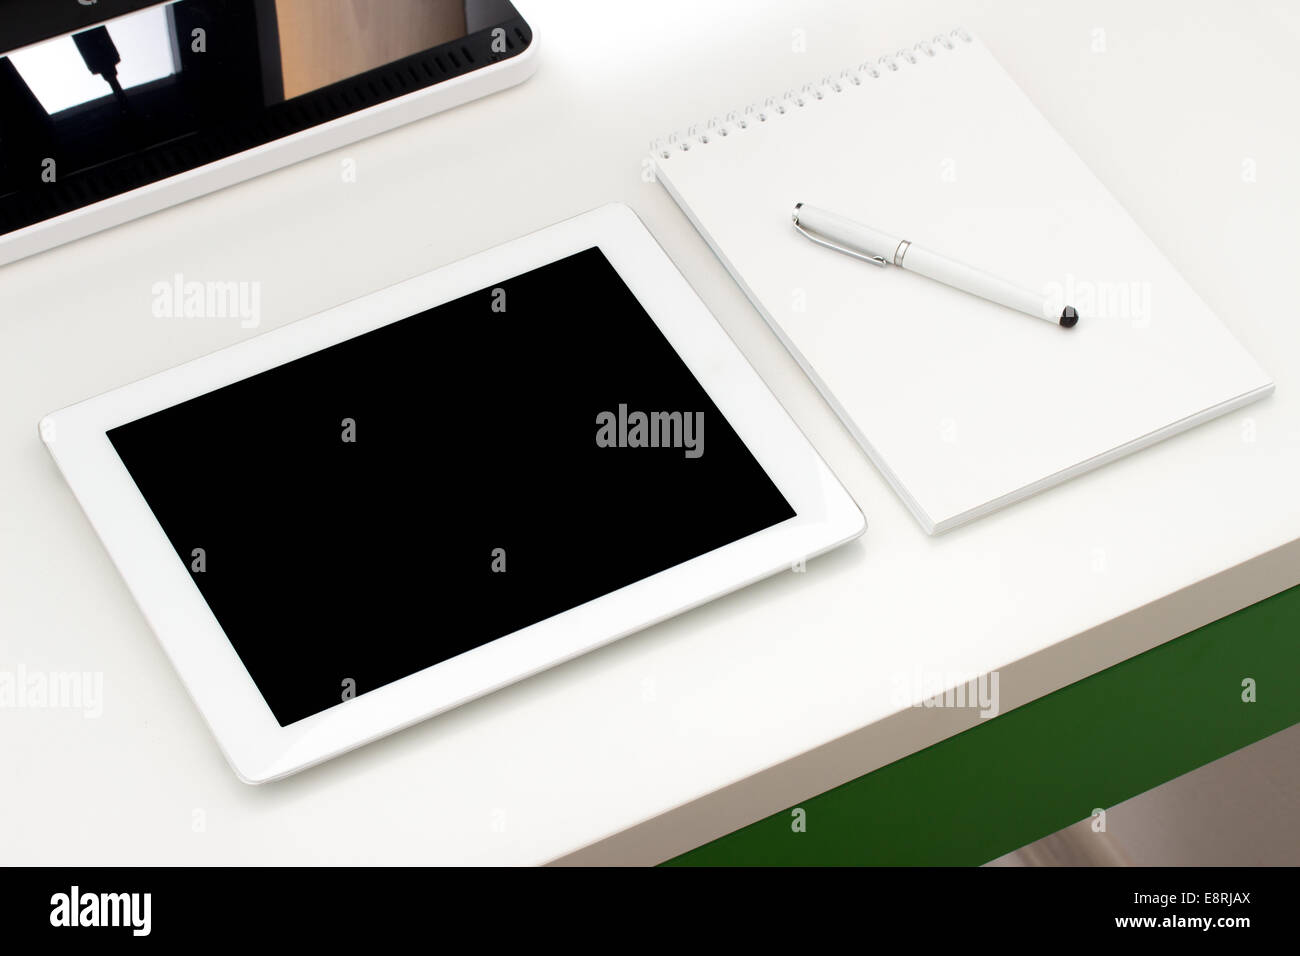 Workplace with tablet and keyboard, pen Stock Photo